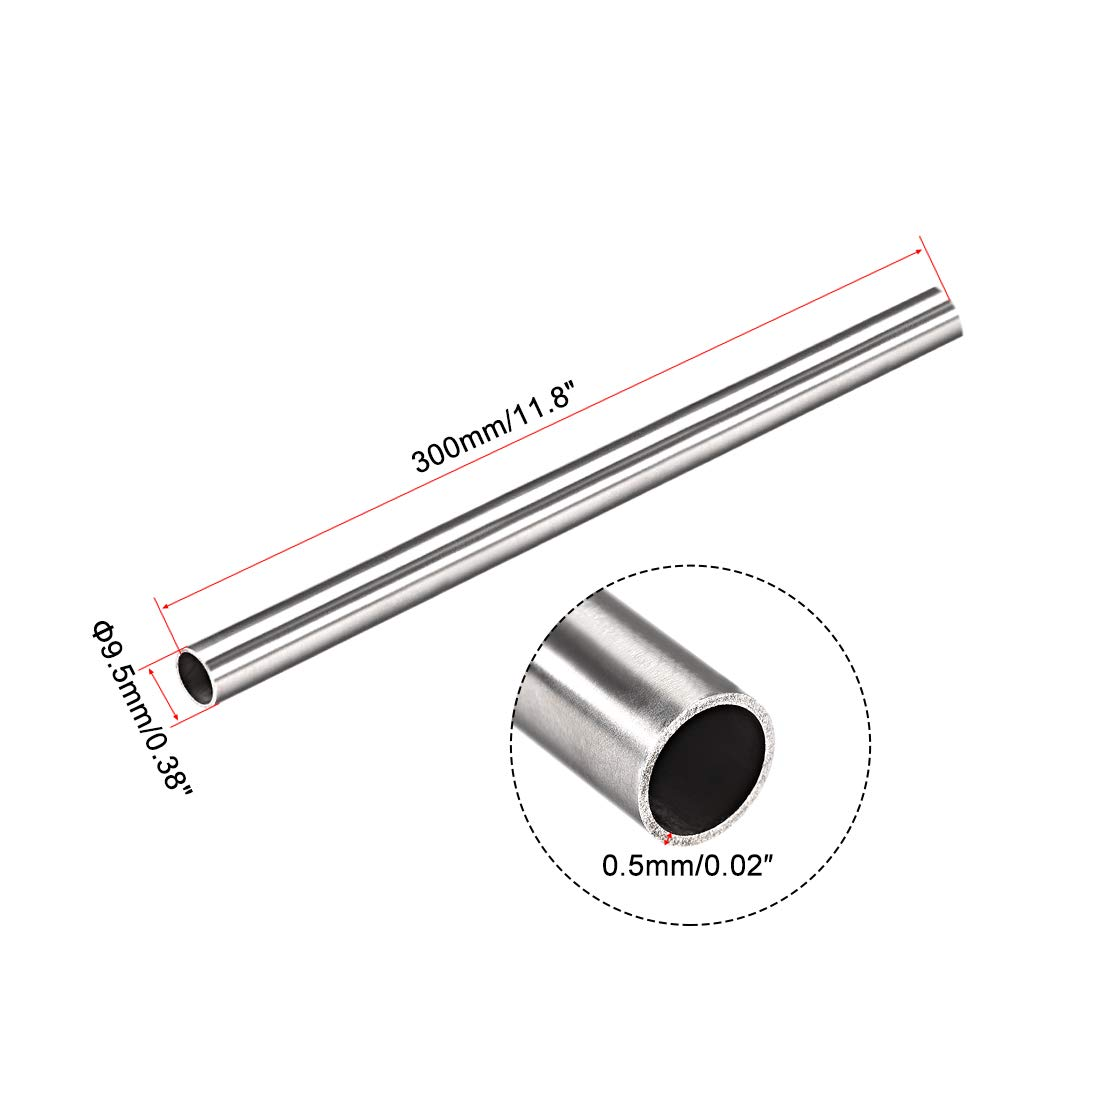 uxcell 304 Stainless Steel Capillary Tube Tubing 8.5mm ID 9.5mm OD 300mm Length 0.5mm Wall